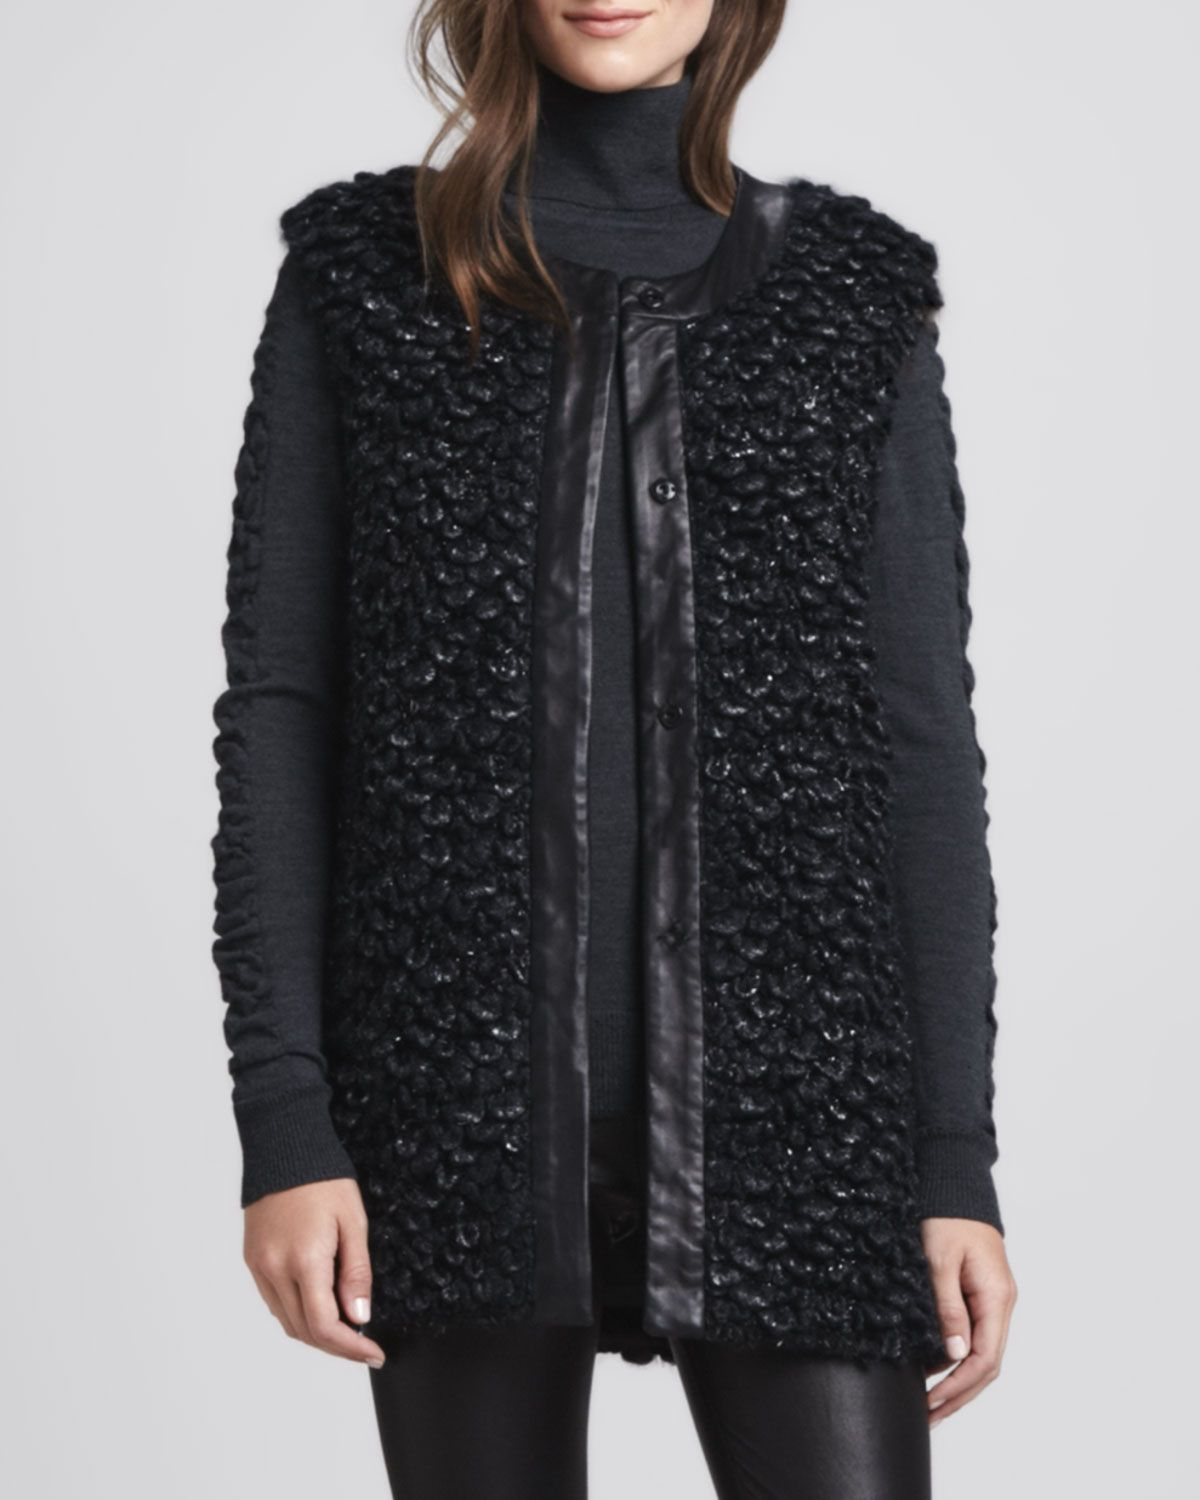 Milly Leather-Trim Long Vest, Shirred-Sleeve Wool Turtleneck & Monic Leather Skinny Pants - Bergdorf Goodman